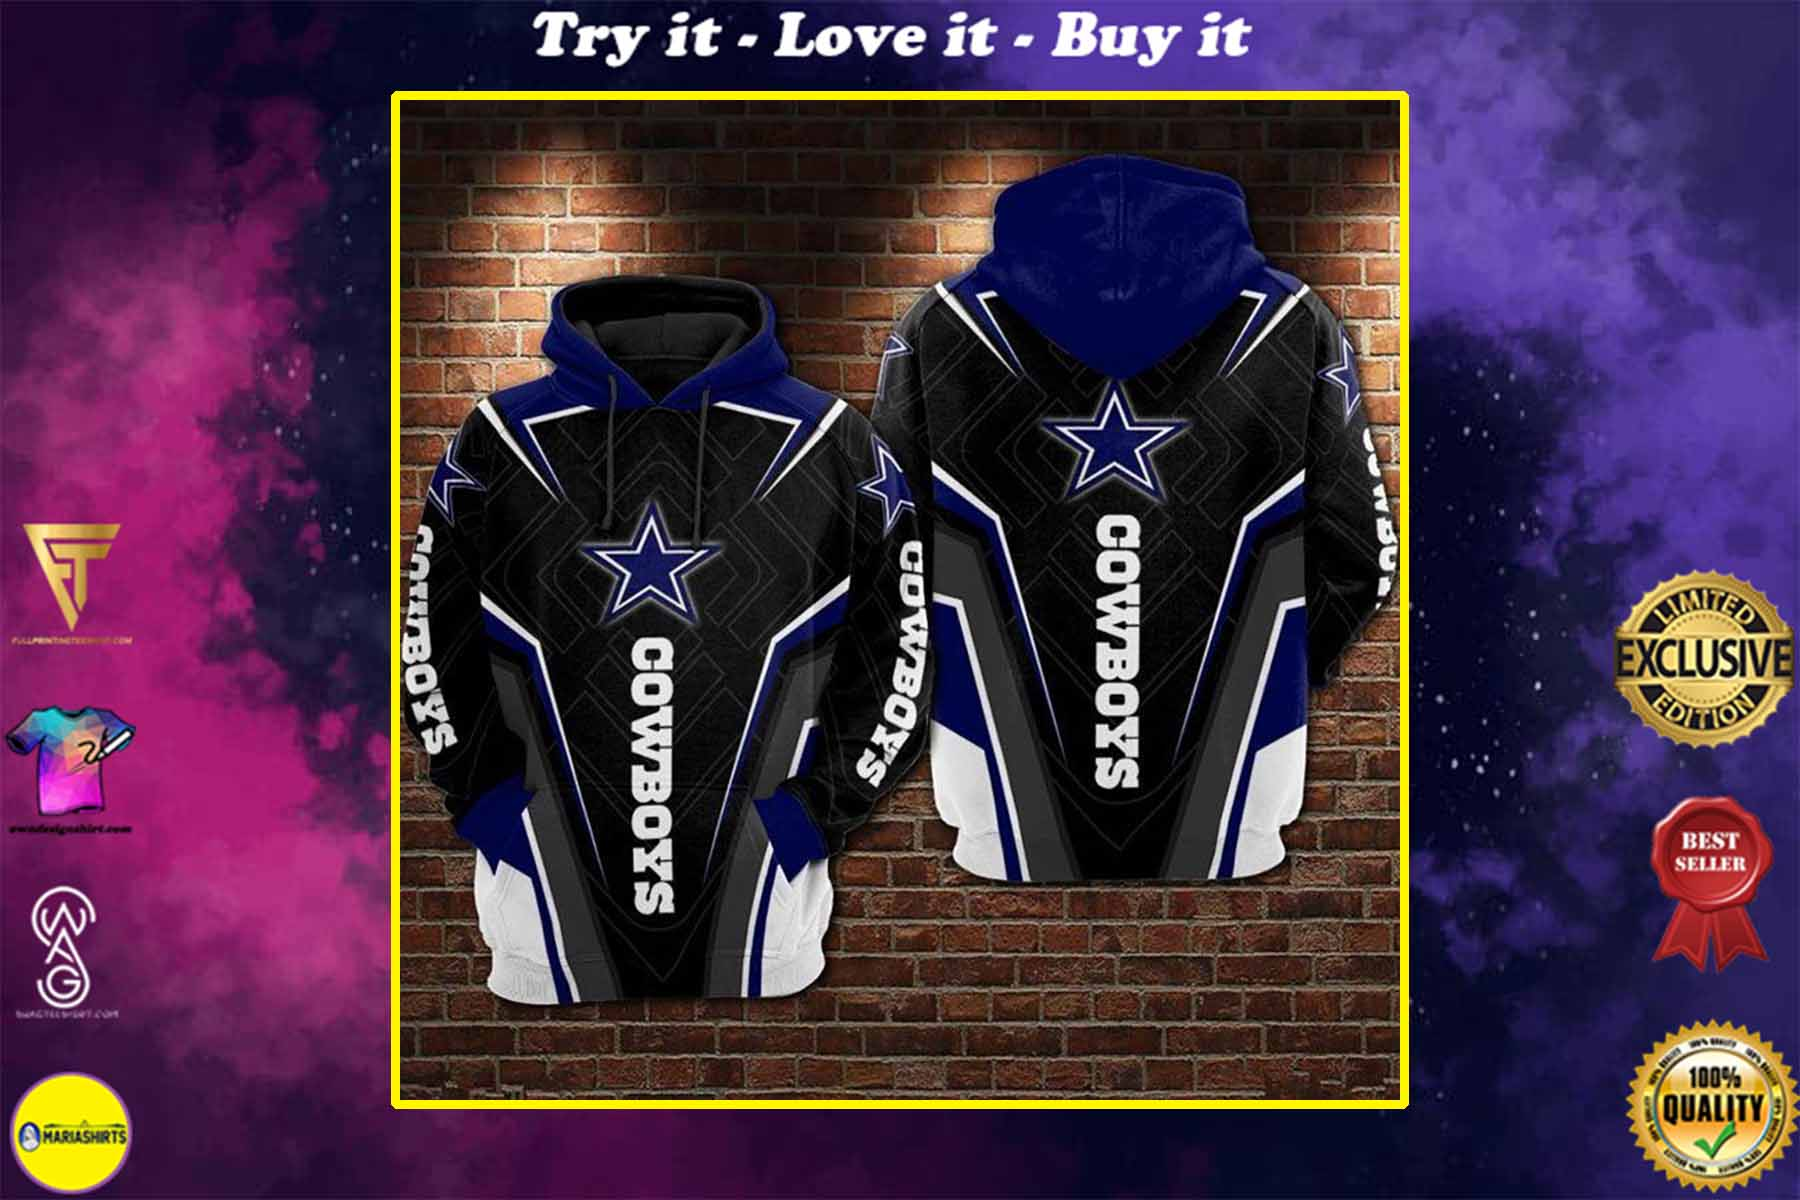 [special edition] the dallas cowboys football team full over printed shirt - maria